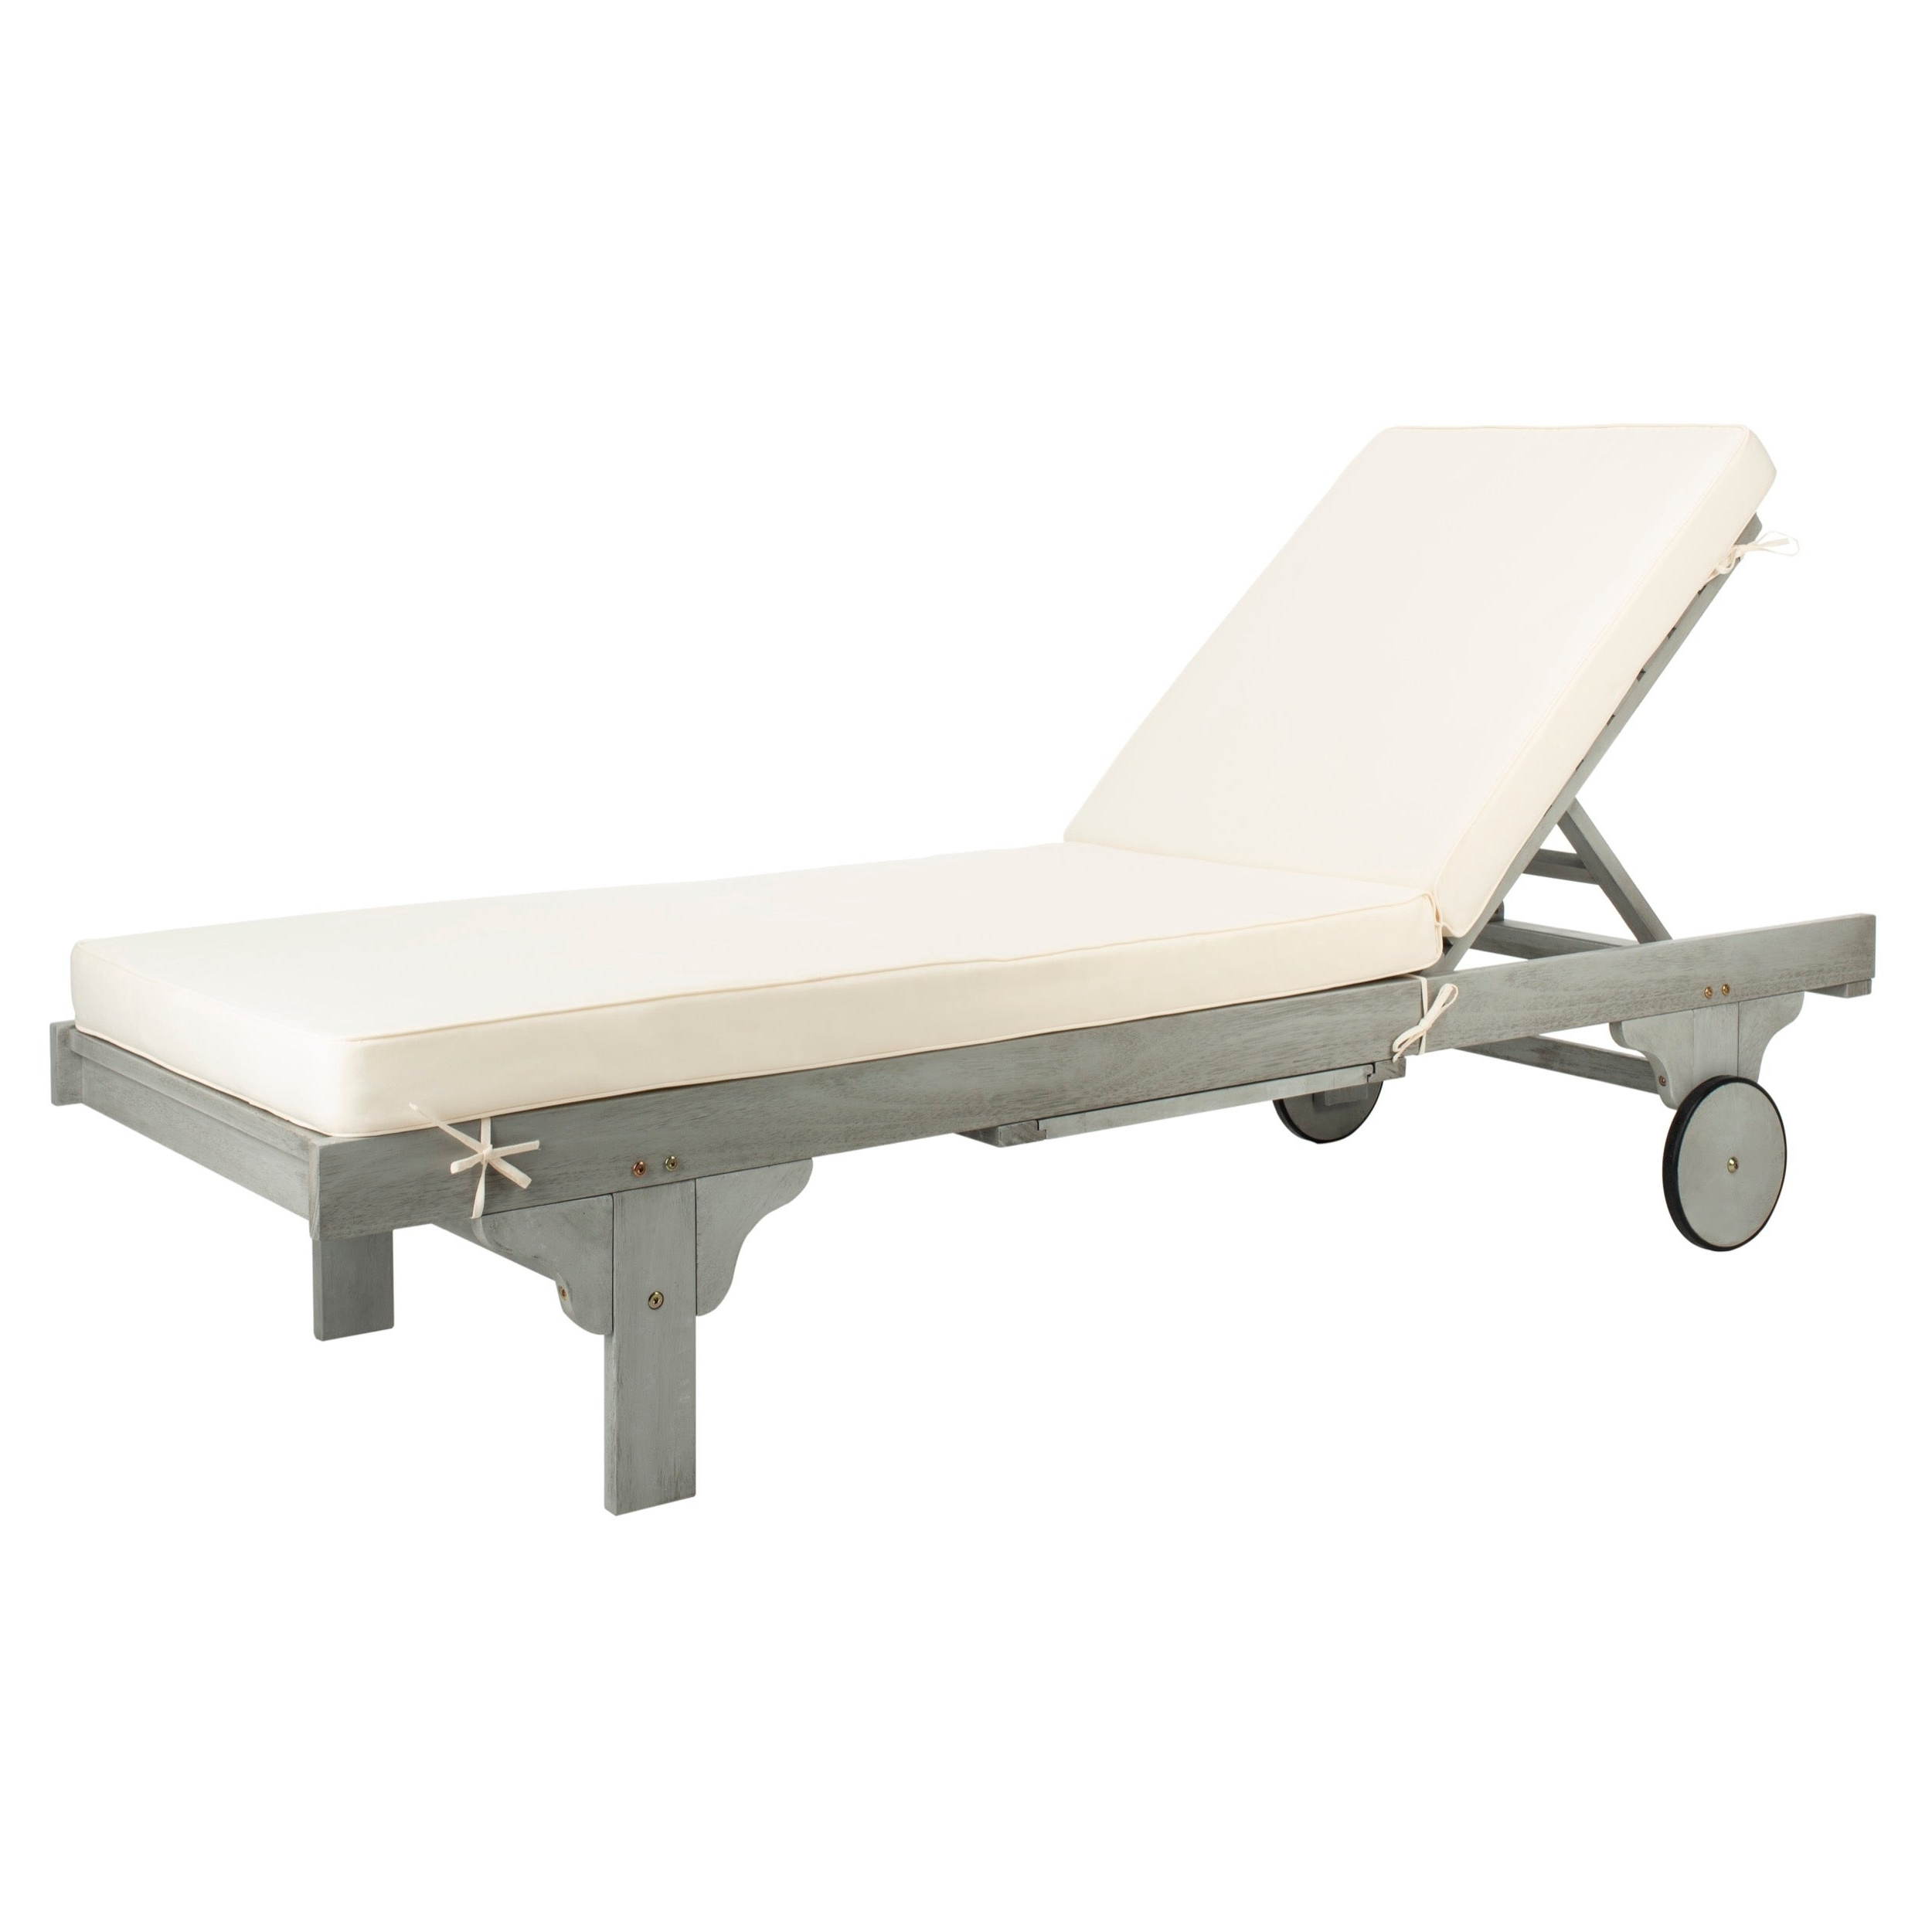 """Outdoor Cart Wheel Adjustable Chaise Lounge Chairs Within Newest Safavieh Outdoor Living Newport Ash Grey/ White Cart Wheel Adjustable  Chaise Lounge Chair – 27.6"""" X 78.7"""" X  (View 16 of 25)"""